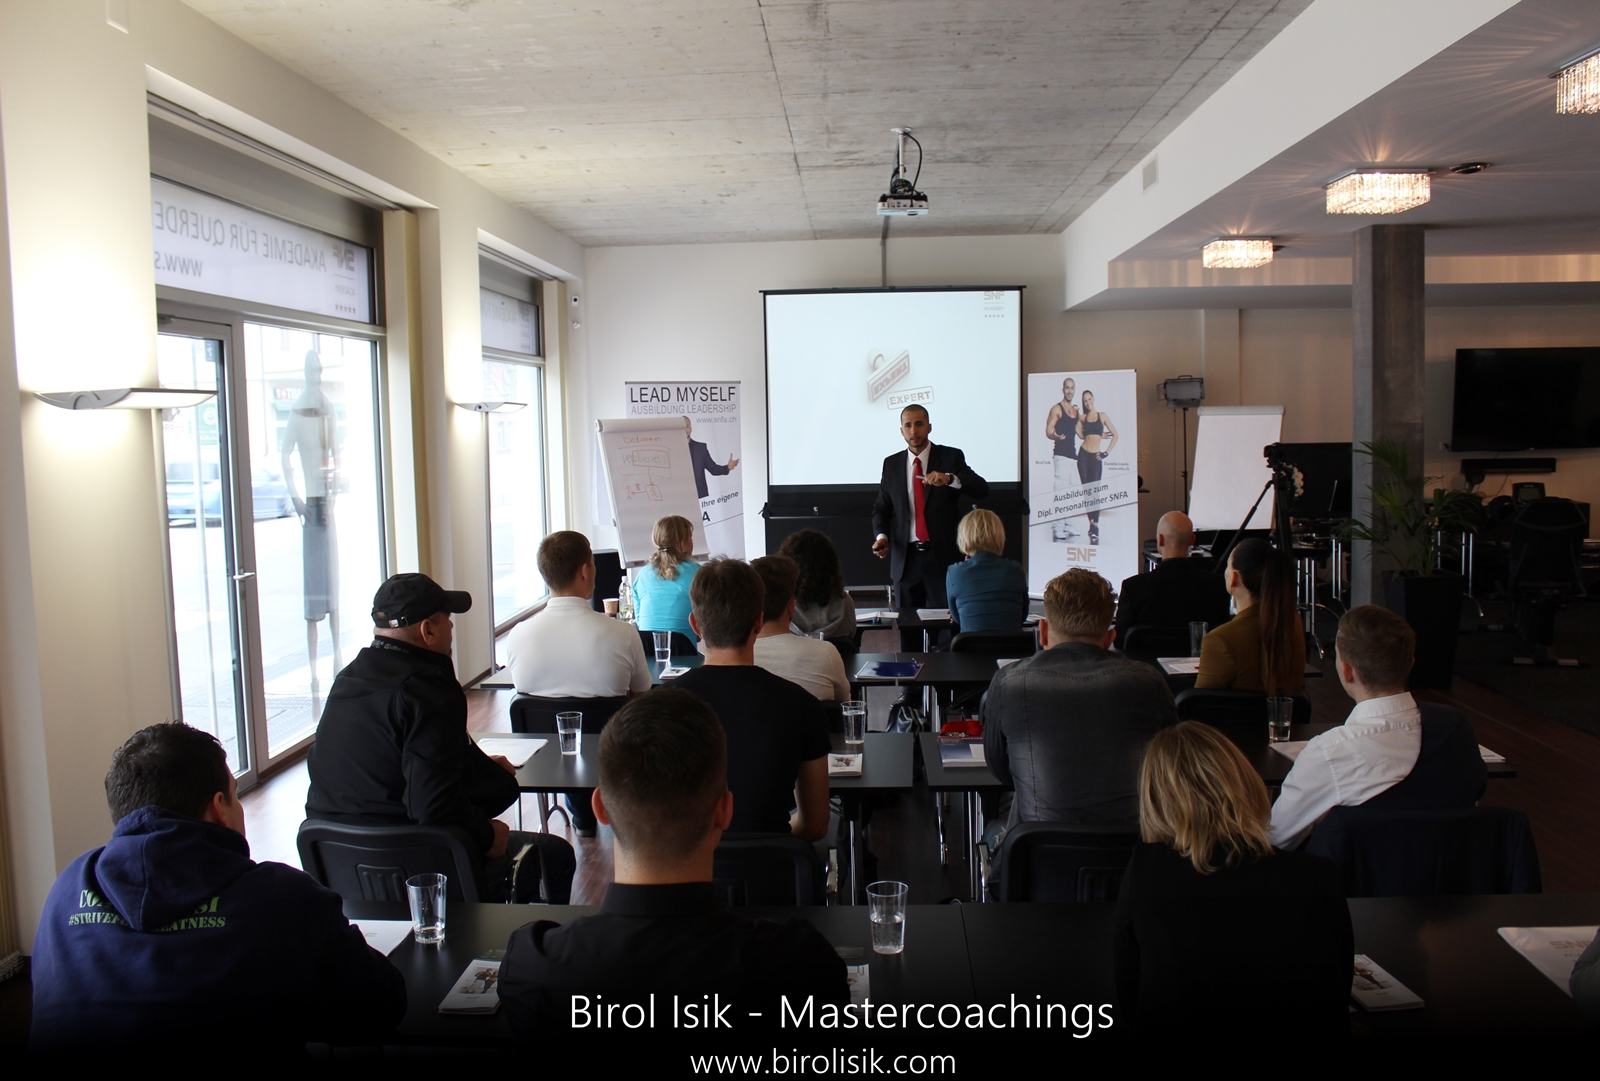 Leadership - Birol Isik